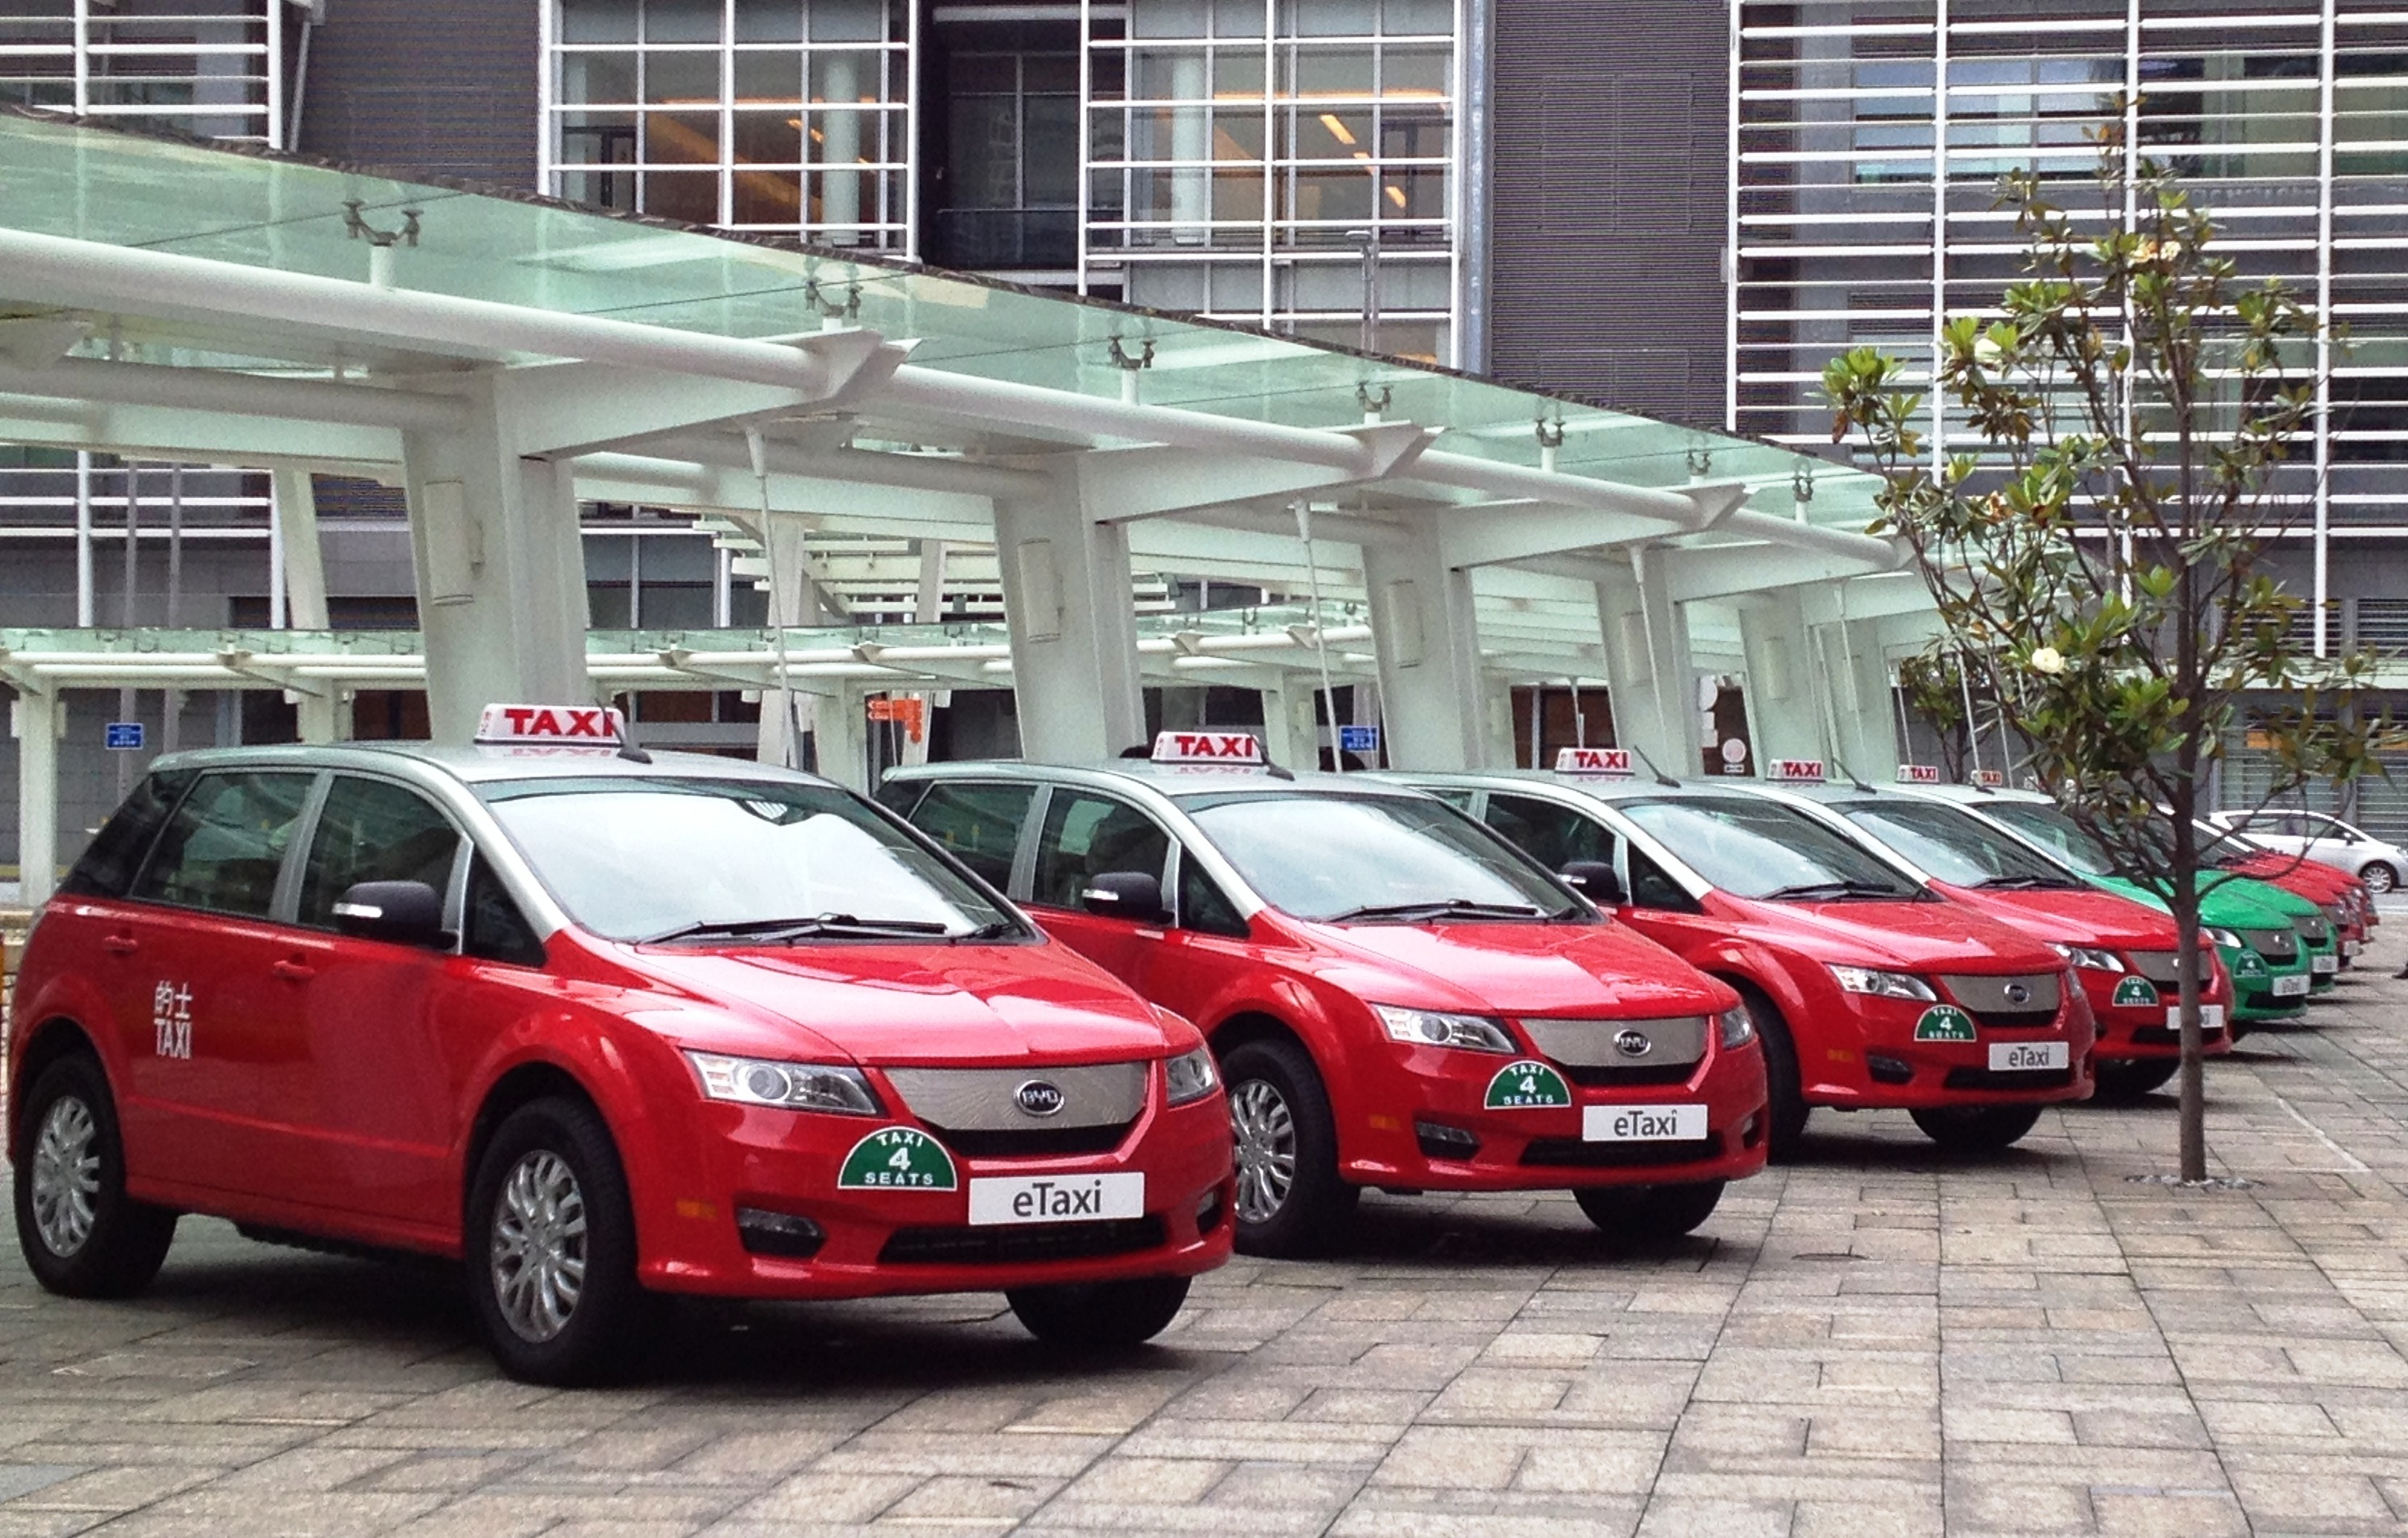 Hong Kong's Pure-Electric Taxis Go into Service